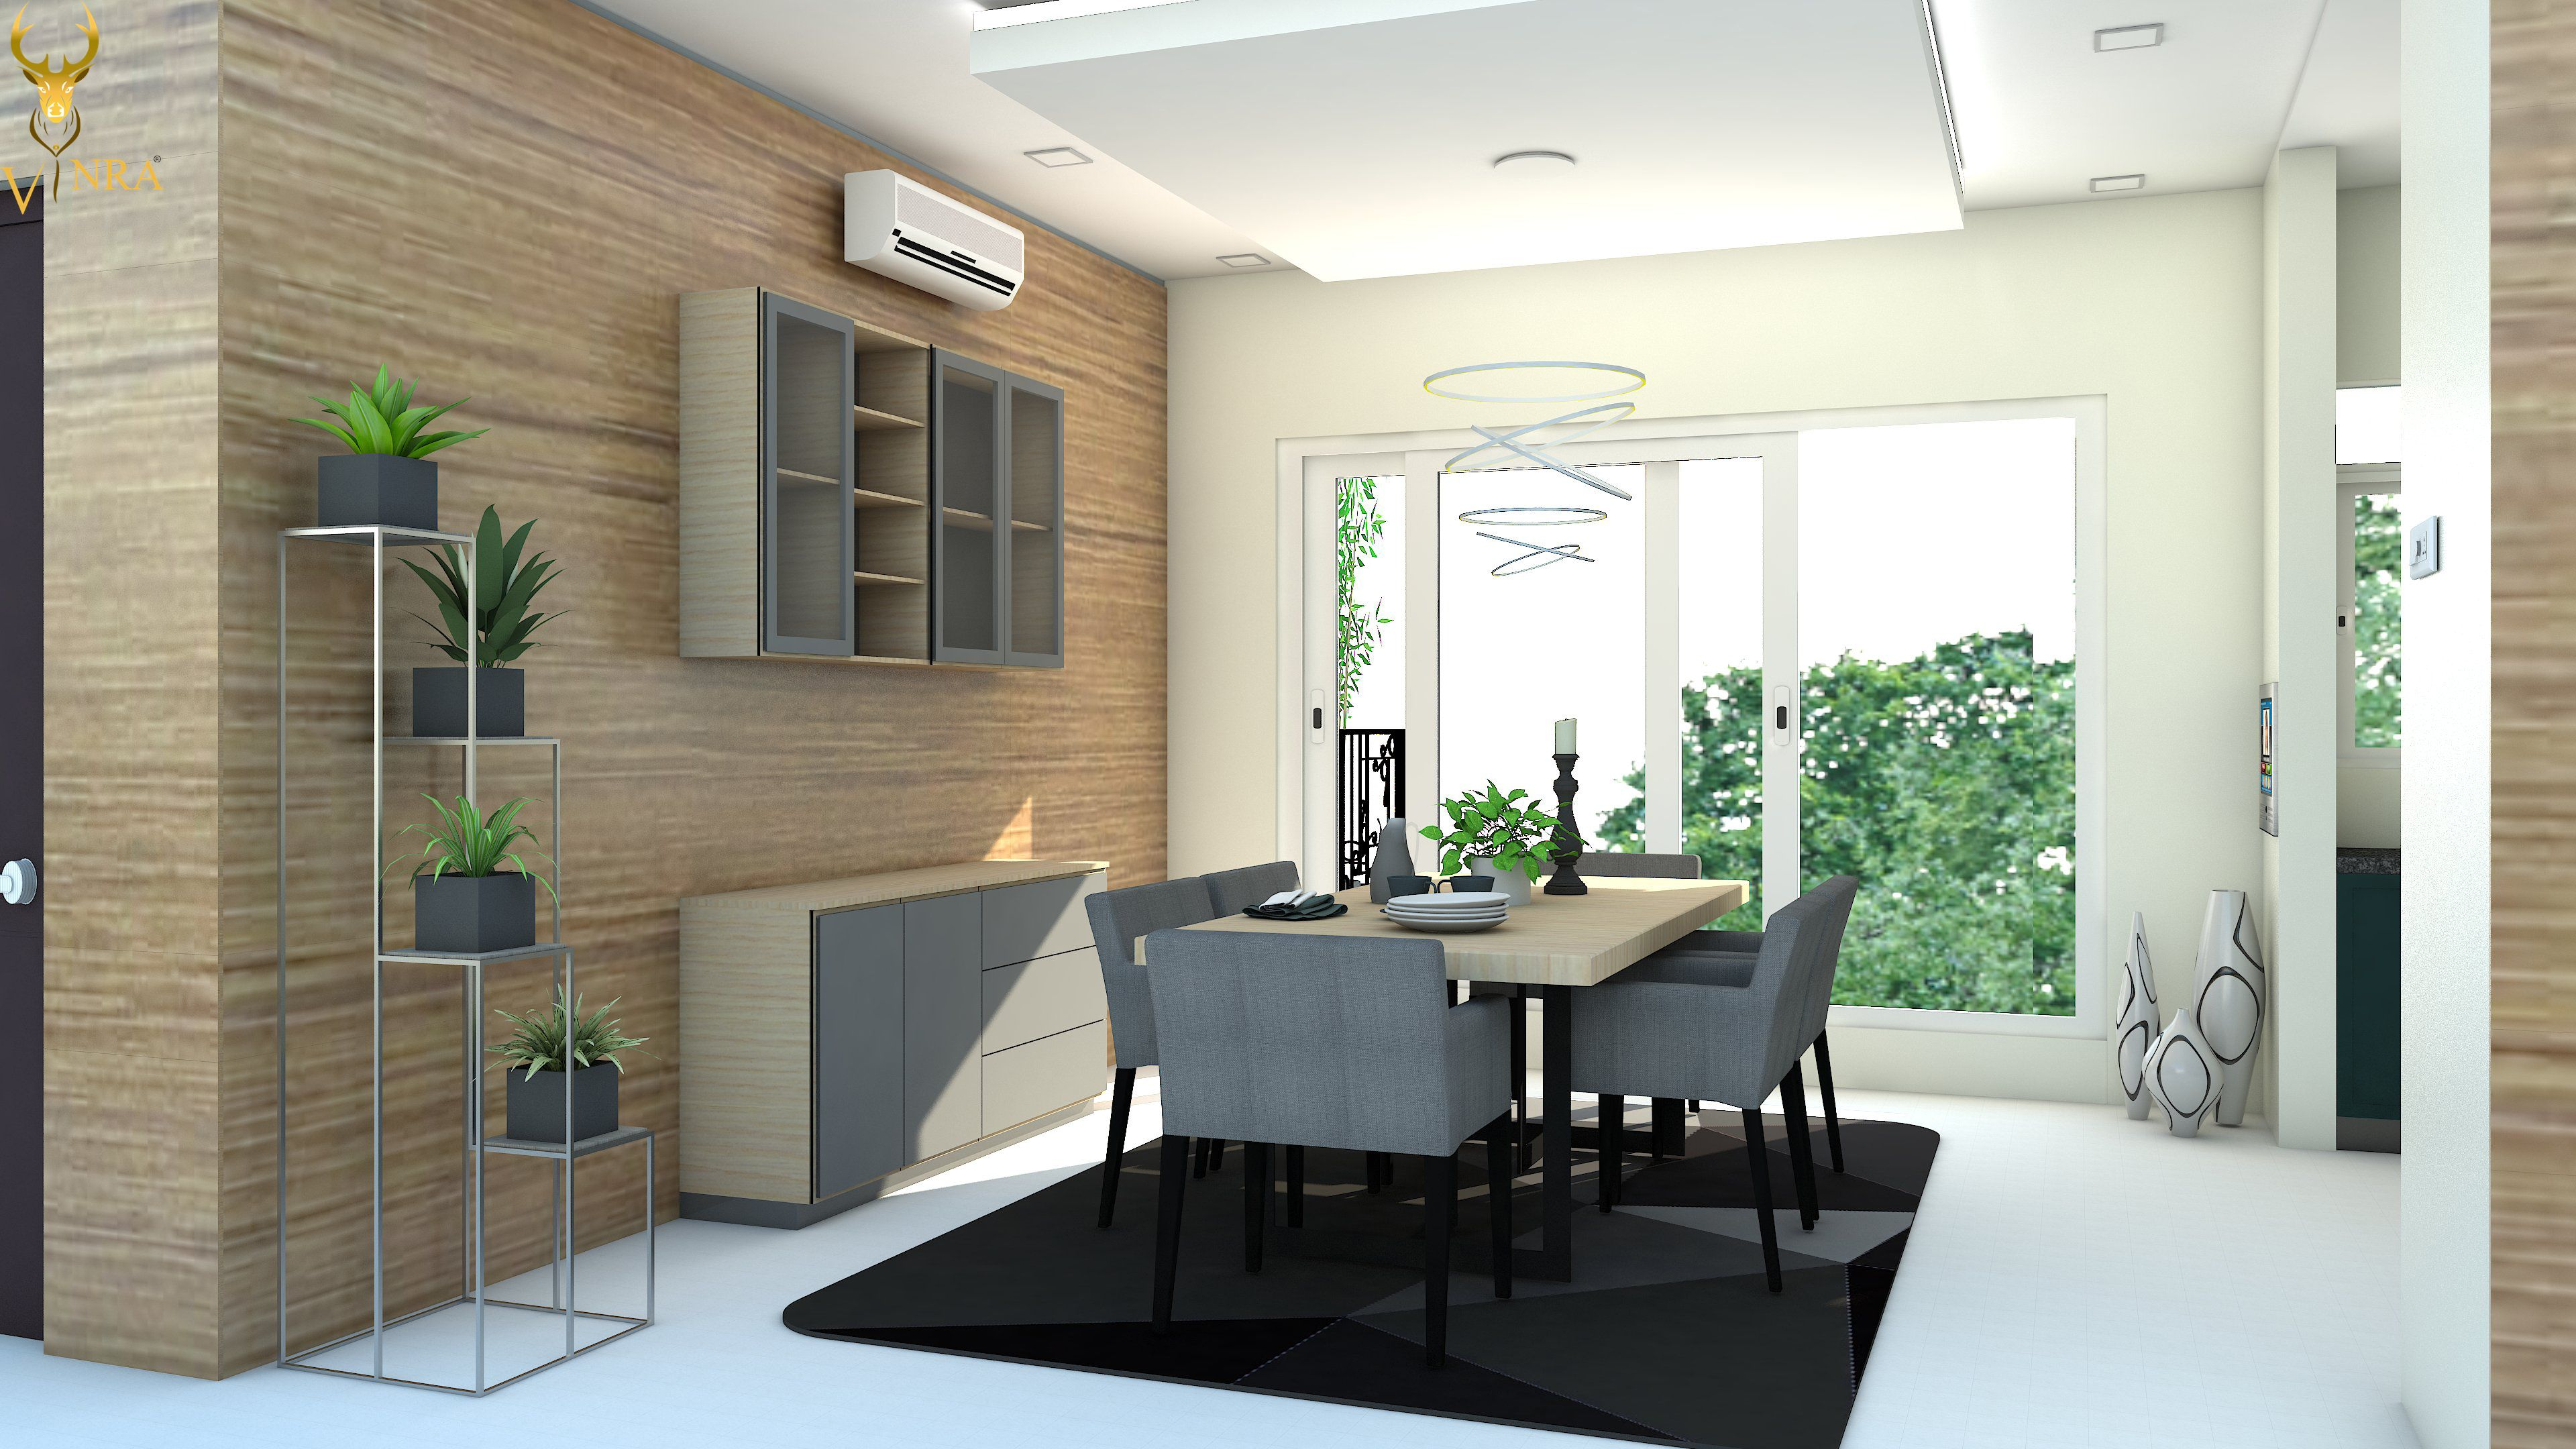 2d 3d Design Done For 5 Bhk Flat From Our Interior Designer Best Interior Design Interior Design Companies Interior Design